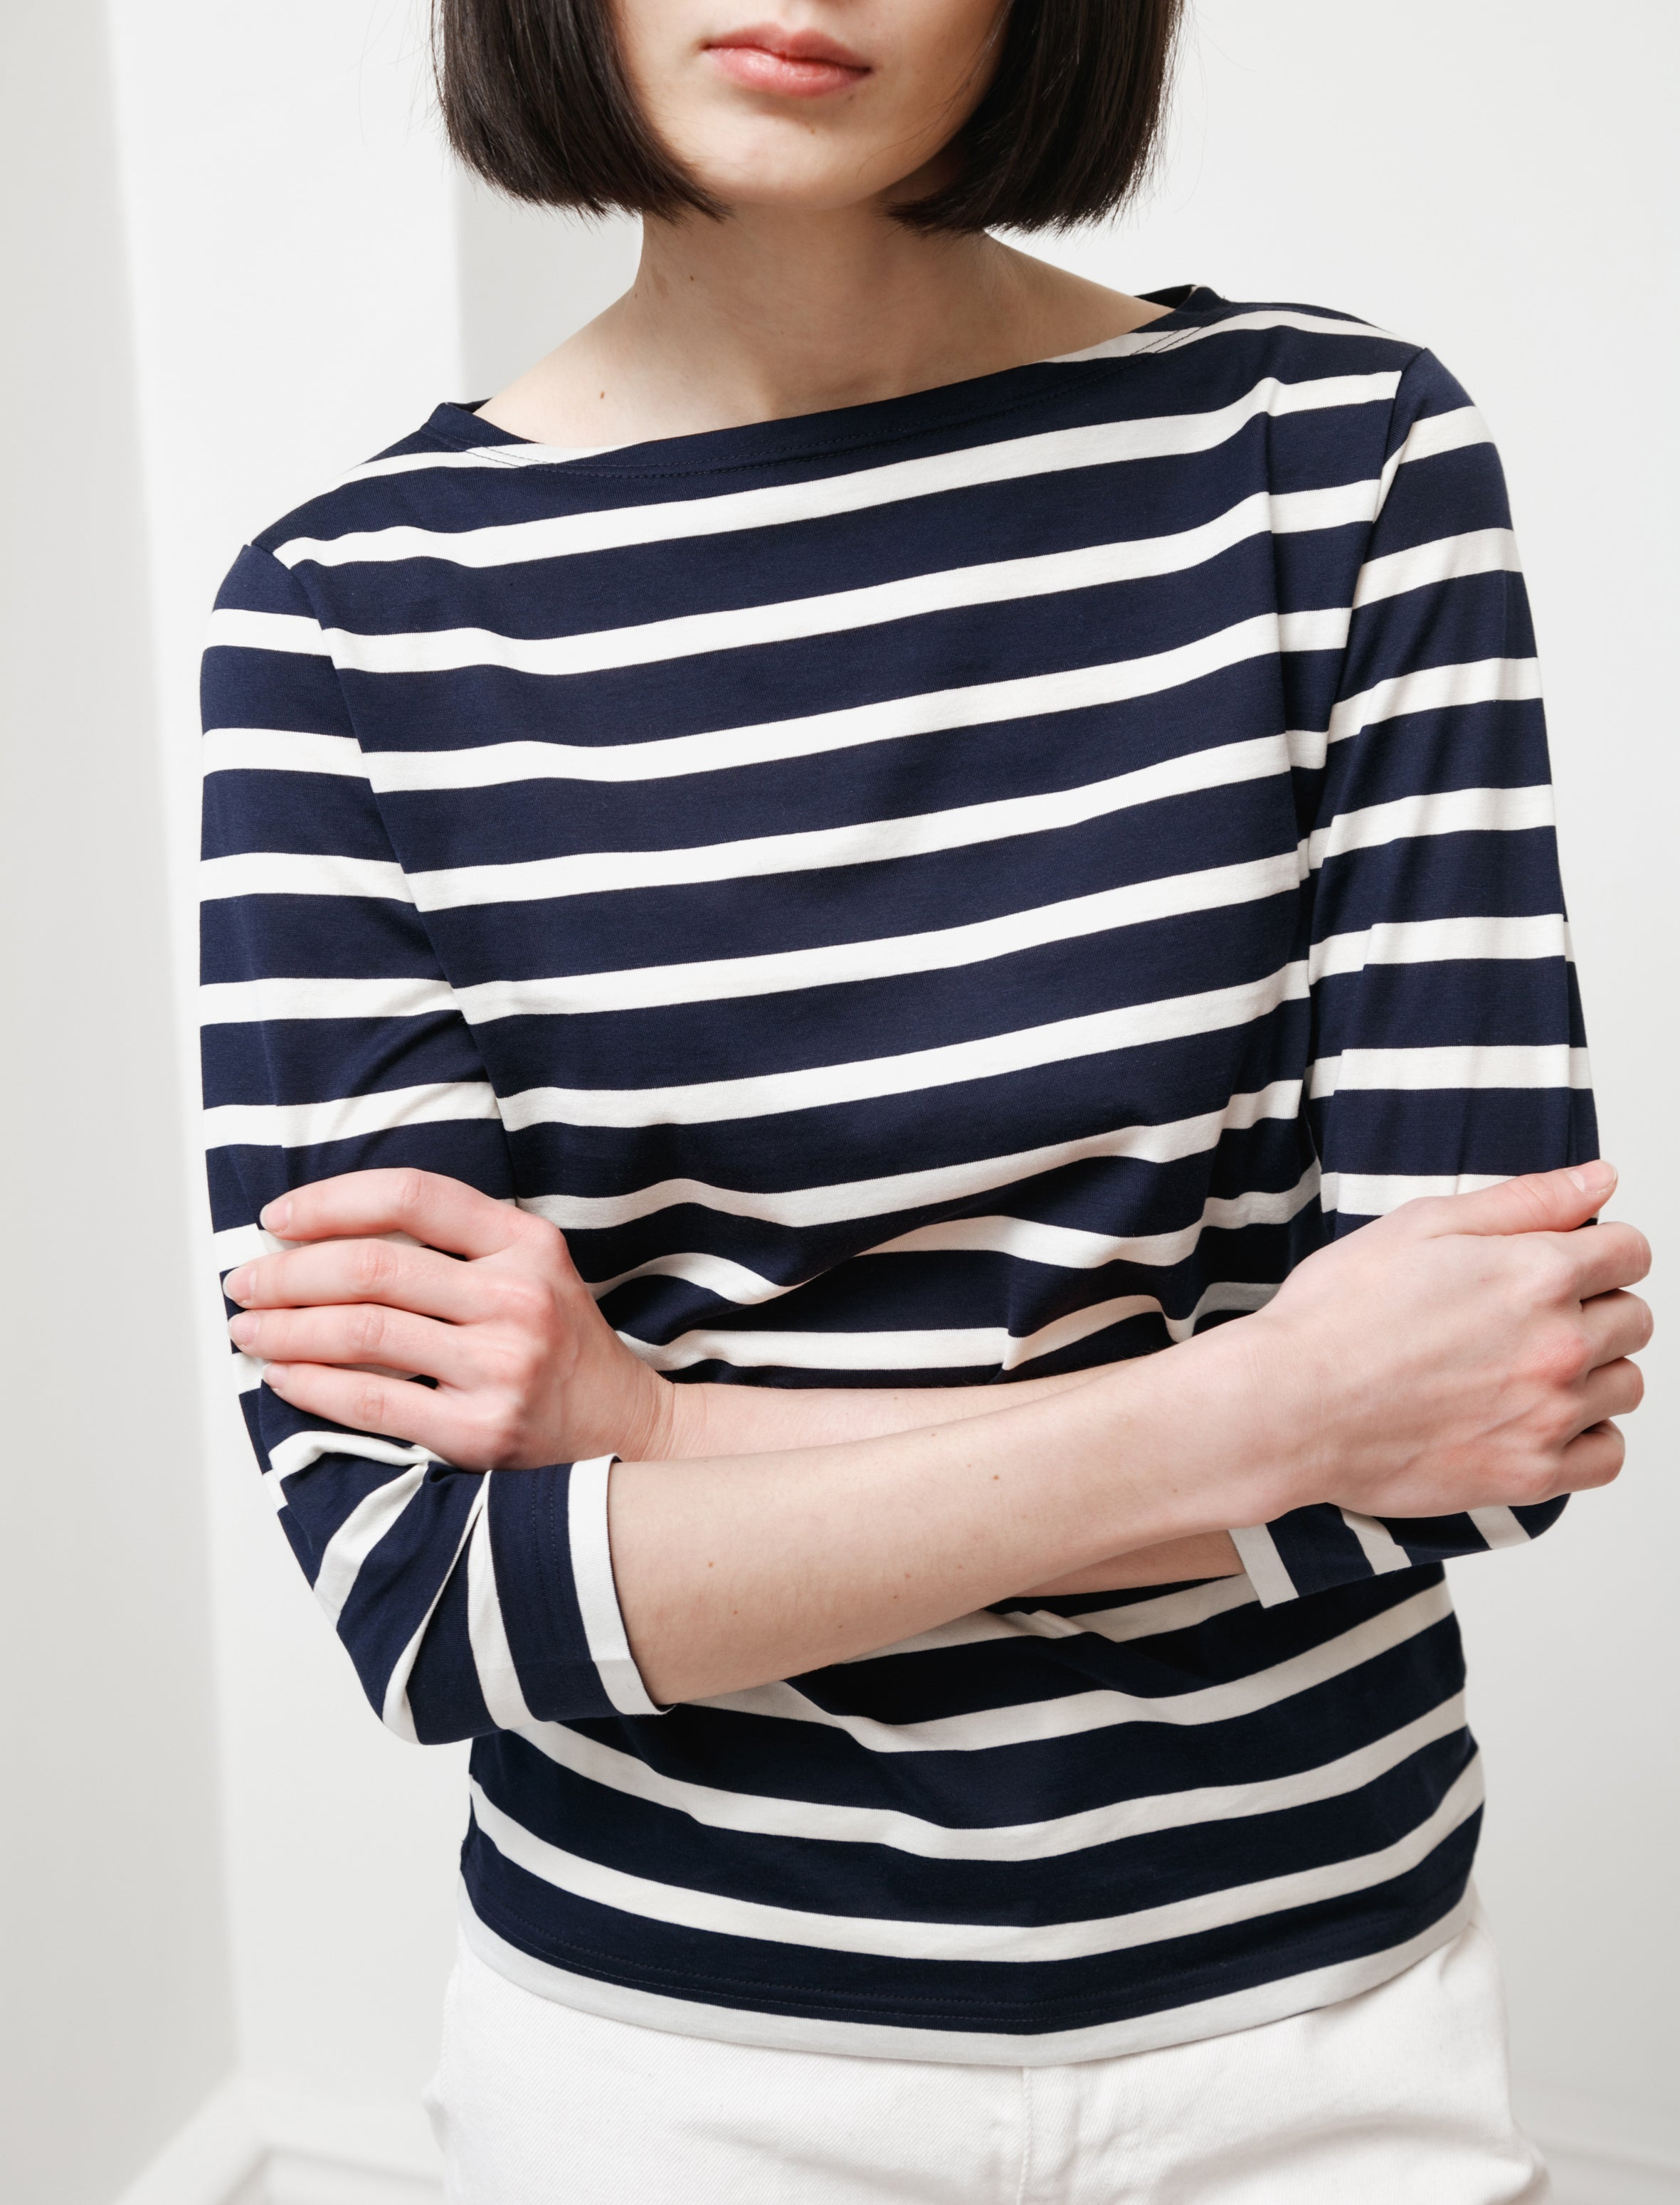 Sunspel 3/4 Sleeve Striped Boatneck T-Shirt Navy/Ecru